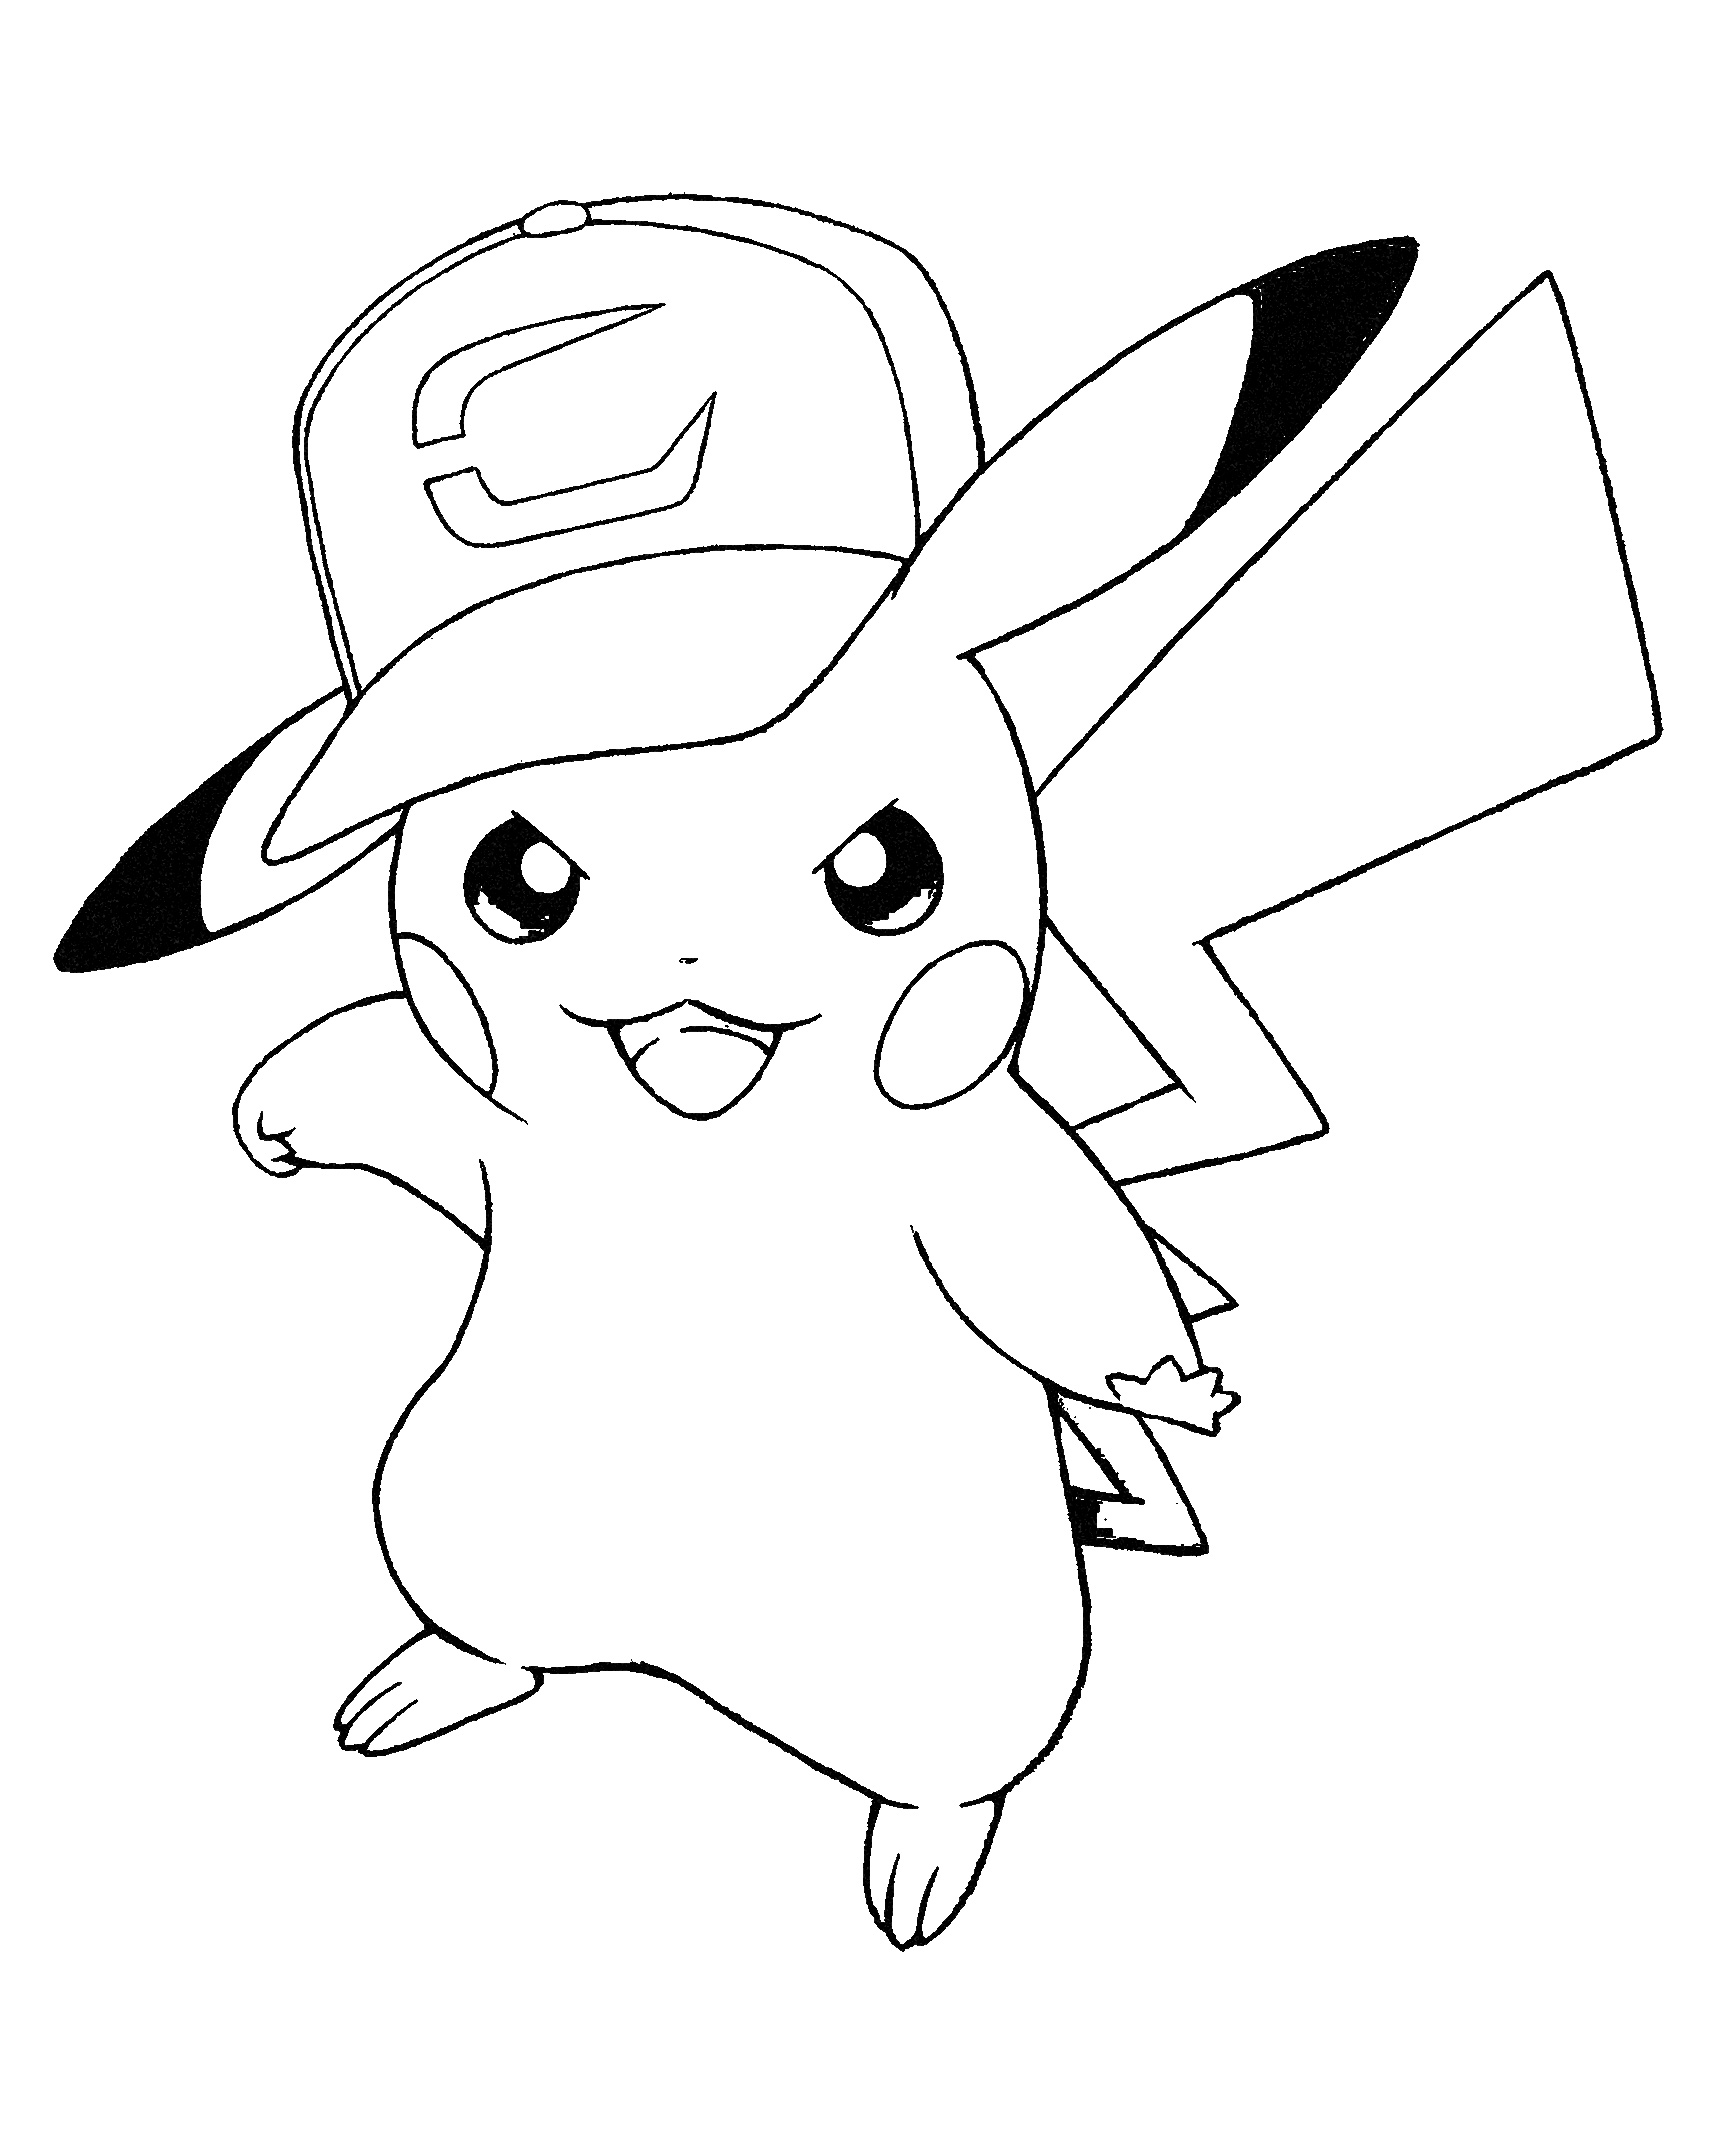 cute adorable pikachu coloring pages july 2013 team colors adorable pages coloring pikachu cute